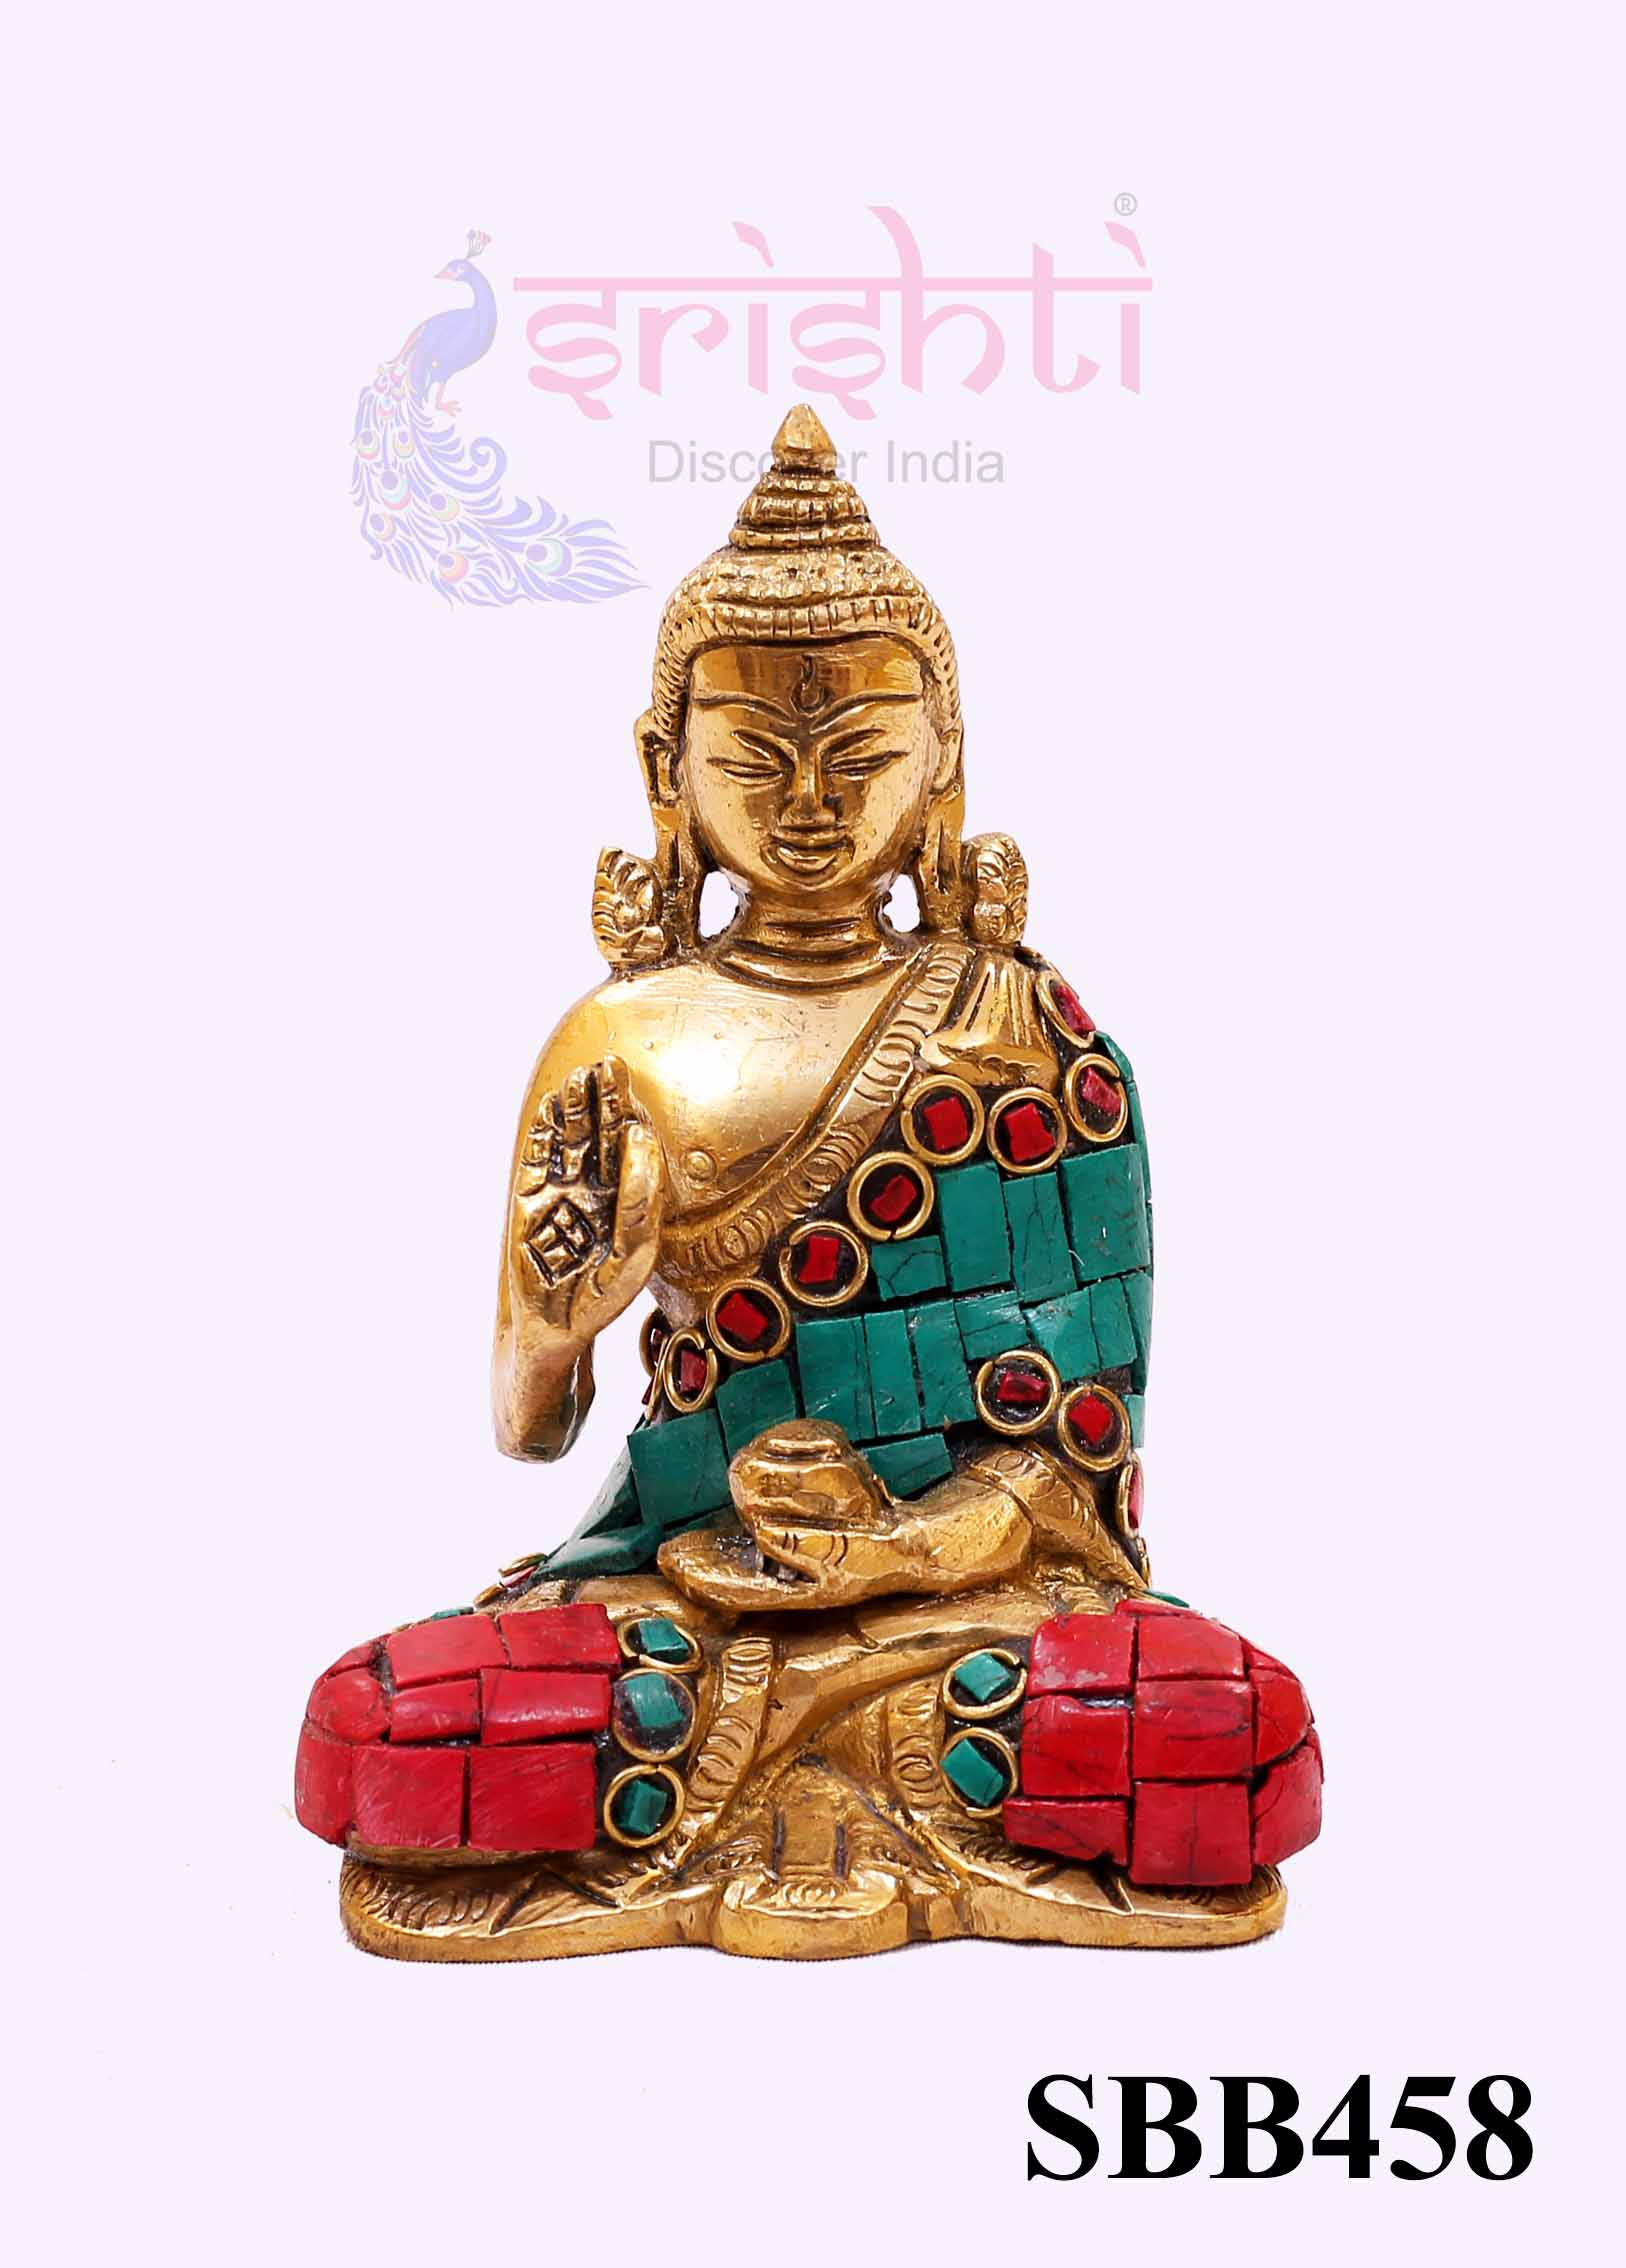 SSBU-Brass Decor Buddha-4 Inches